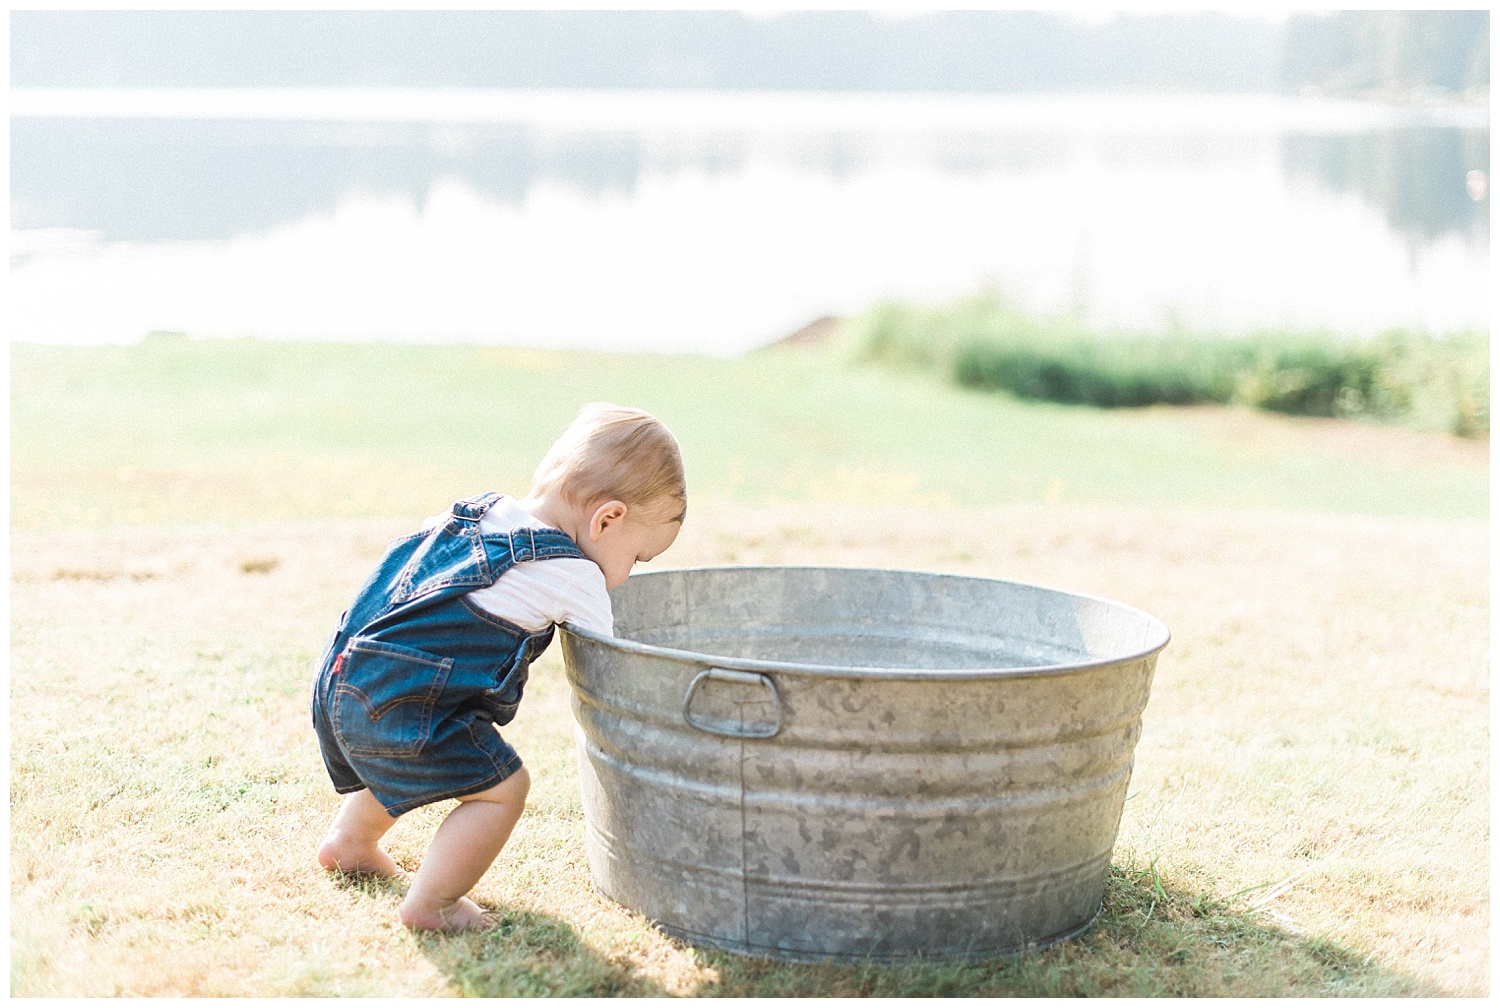 Lakeside bath family photos. Flowing Lake Snohomish. Candid. Out